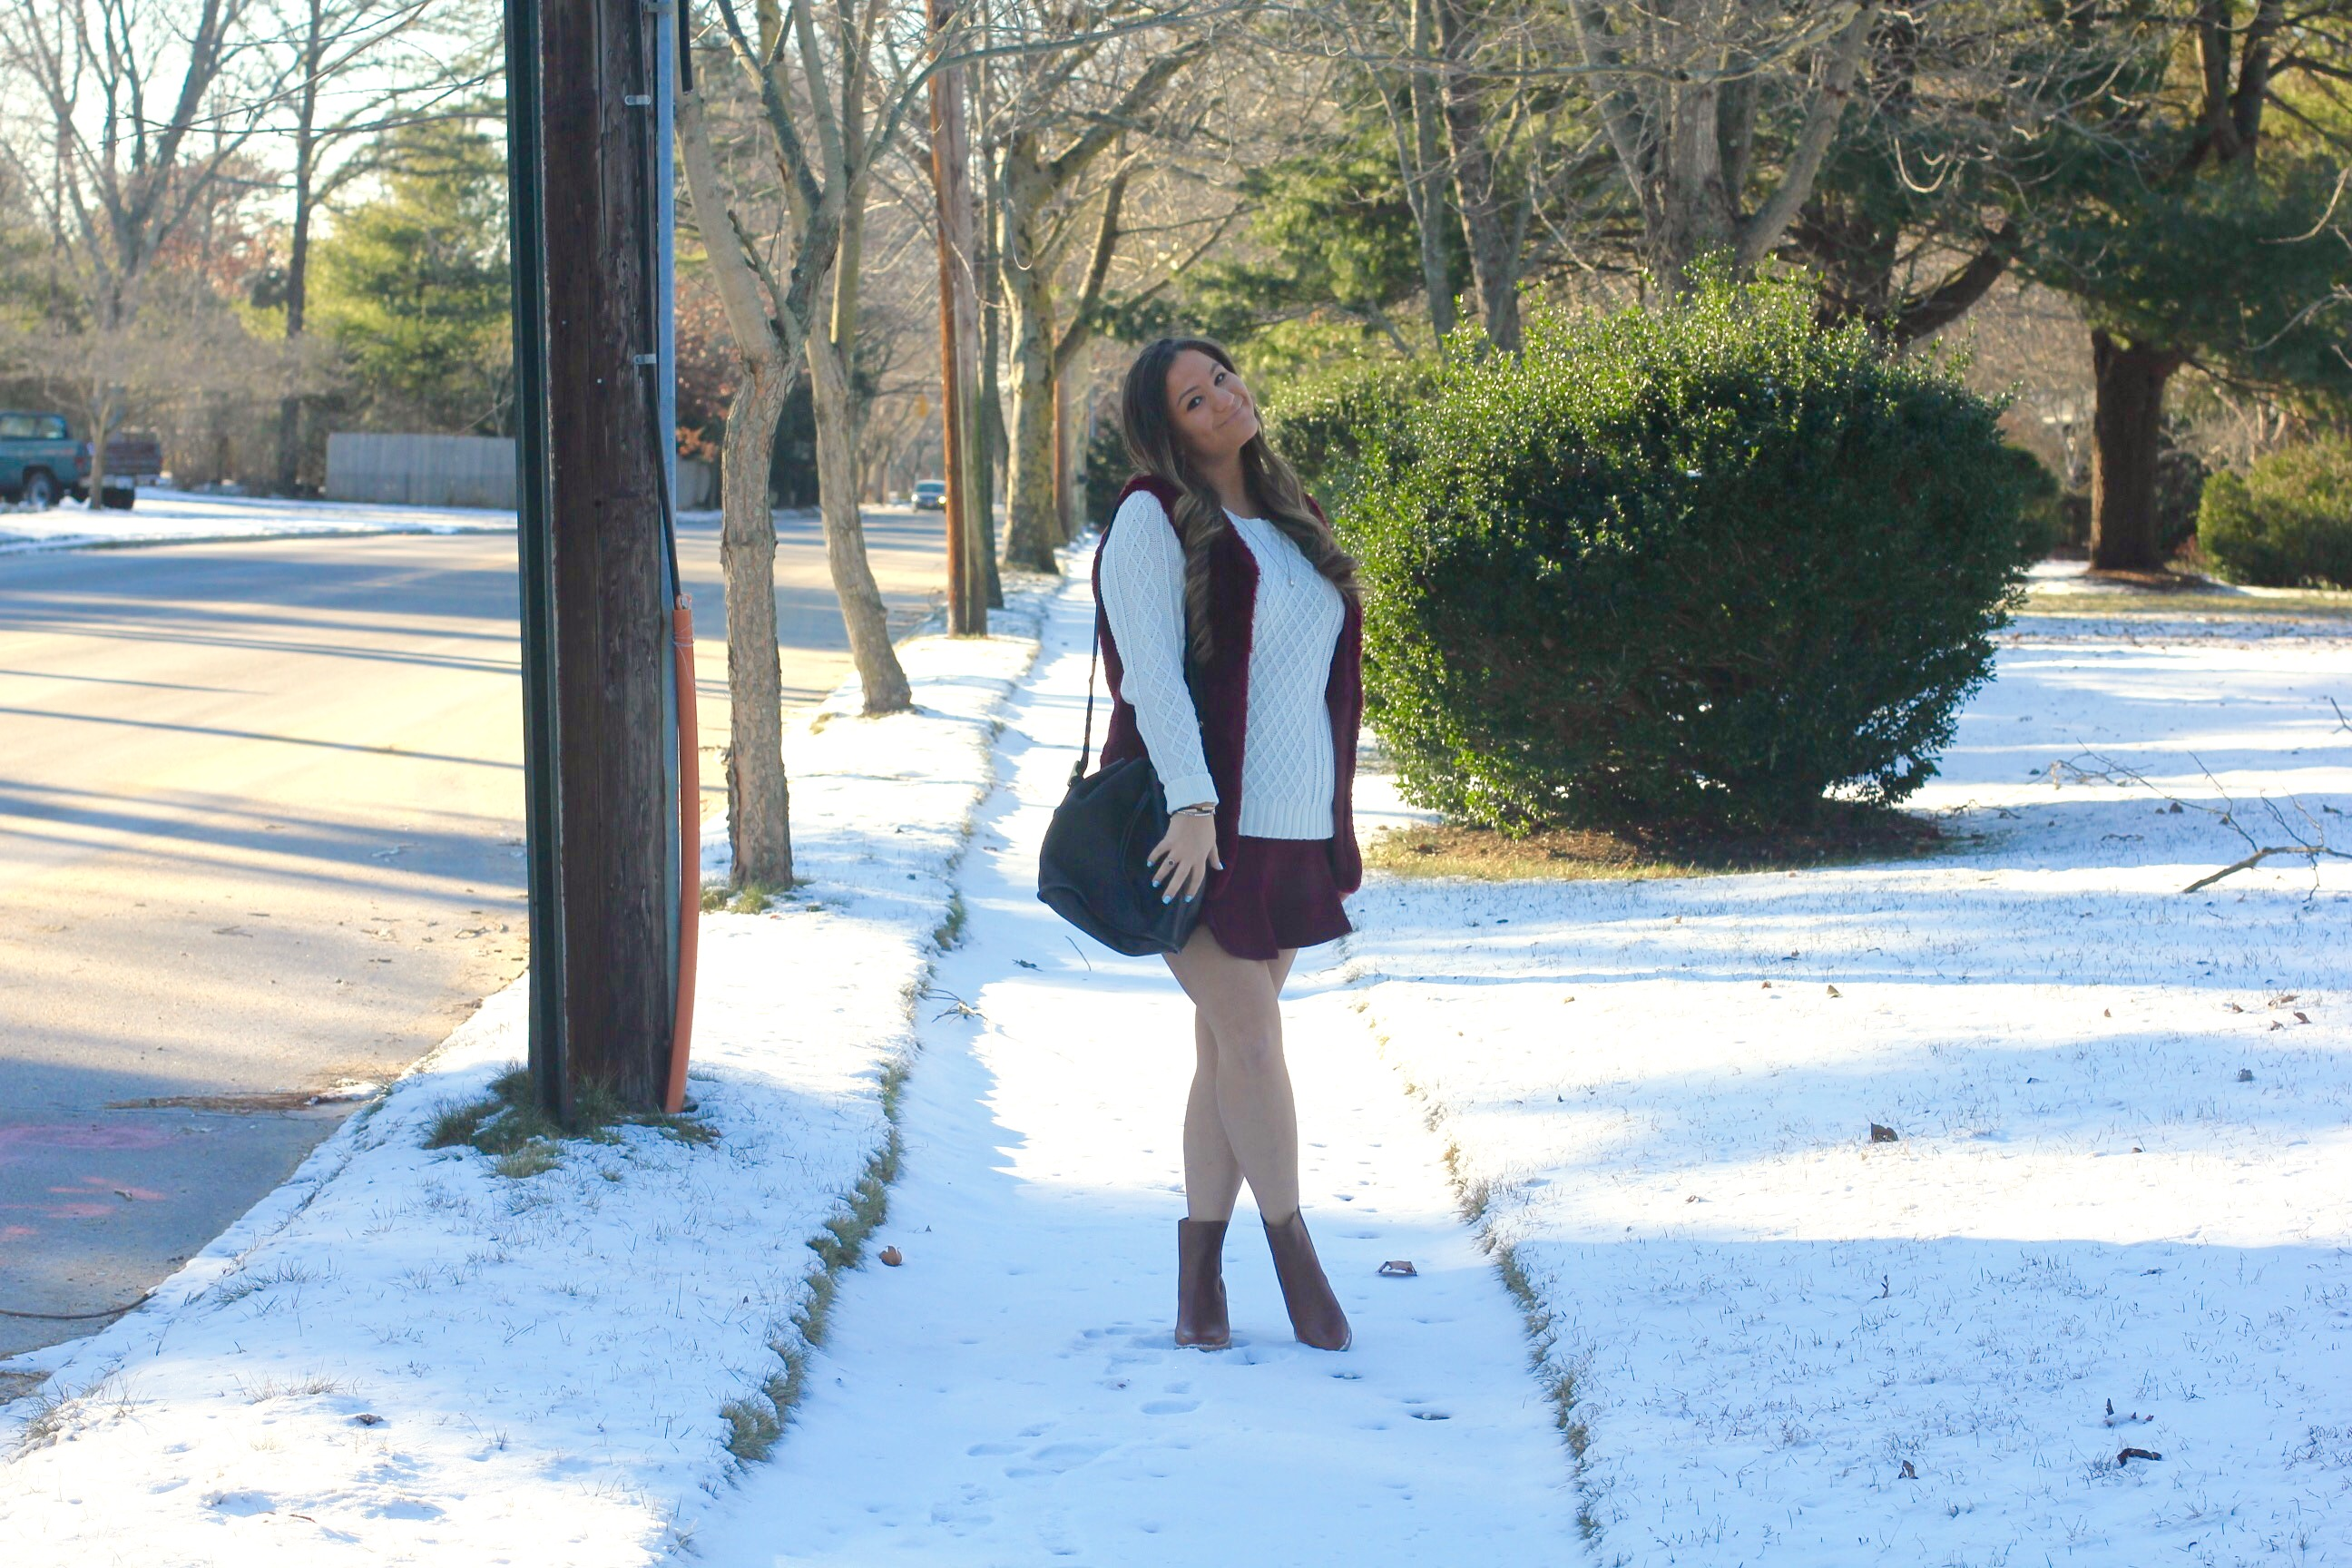 missyonmadison, melissa tierney, la blogger, winter style, ny blizzard, snow day style, tan leather heeled boots, maroon skater skirt, maroon faux fur vest, maroon vest, winter hair style, anne klein watch, black leather bucket bag, heeled ankle boots, white cable knit sweater, womens white cable knit sweater, ny blogger, tbt, throwback thursday, winter hair trends, brunette hair style, snow style, how to wear maroon,